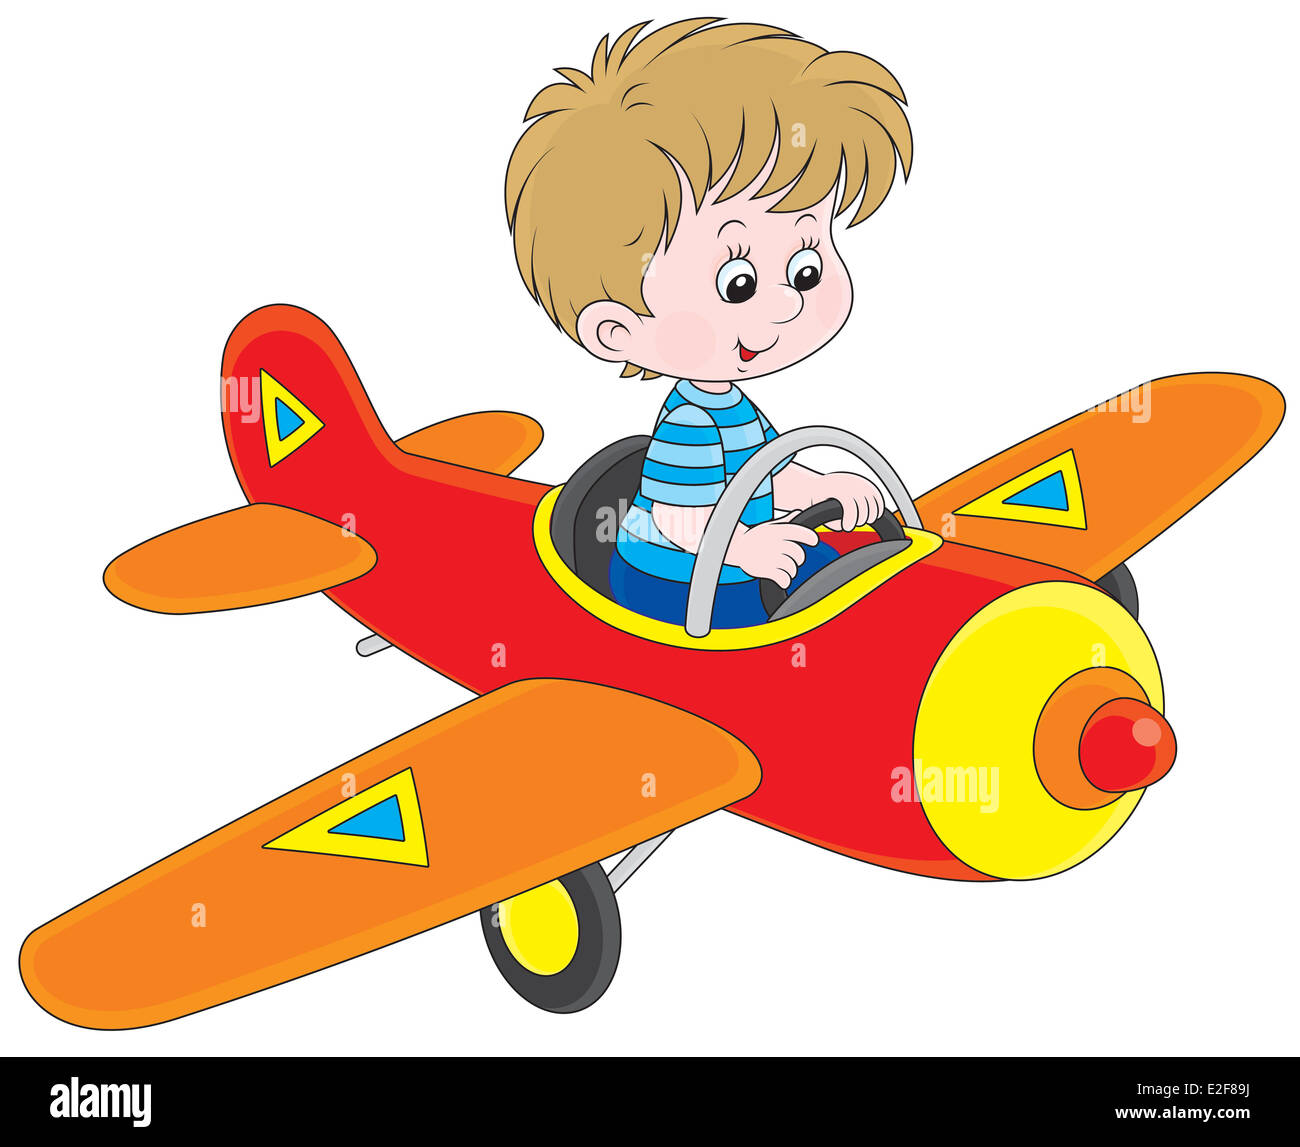 Little boy flying in a toy plane - Stock Image